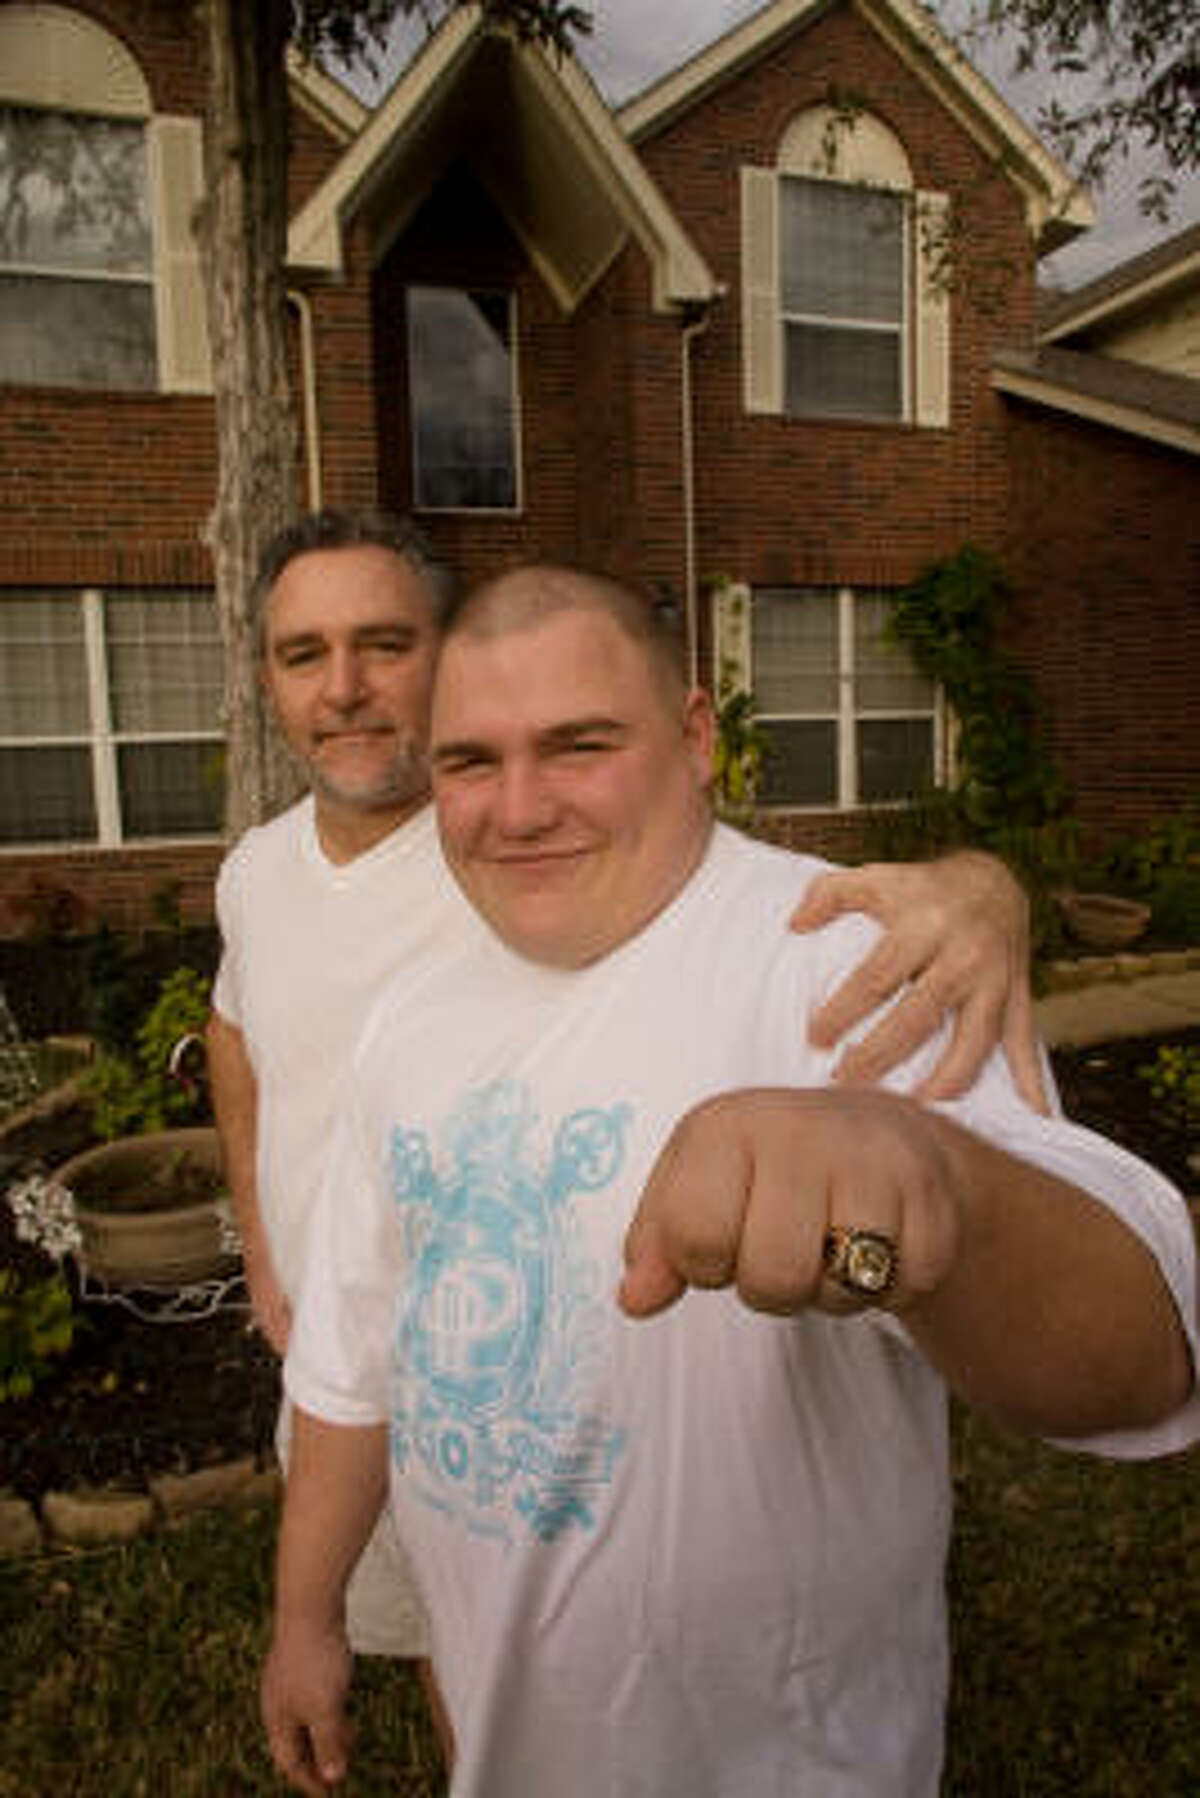 Derek Schottle, 19, pictured with his father, Gary, shows off his Big 12 Special Olympian of the Year ring.